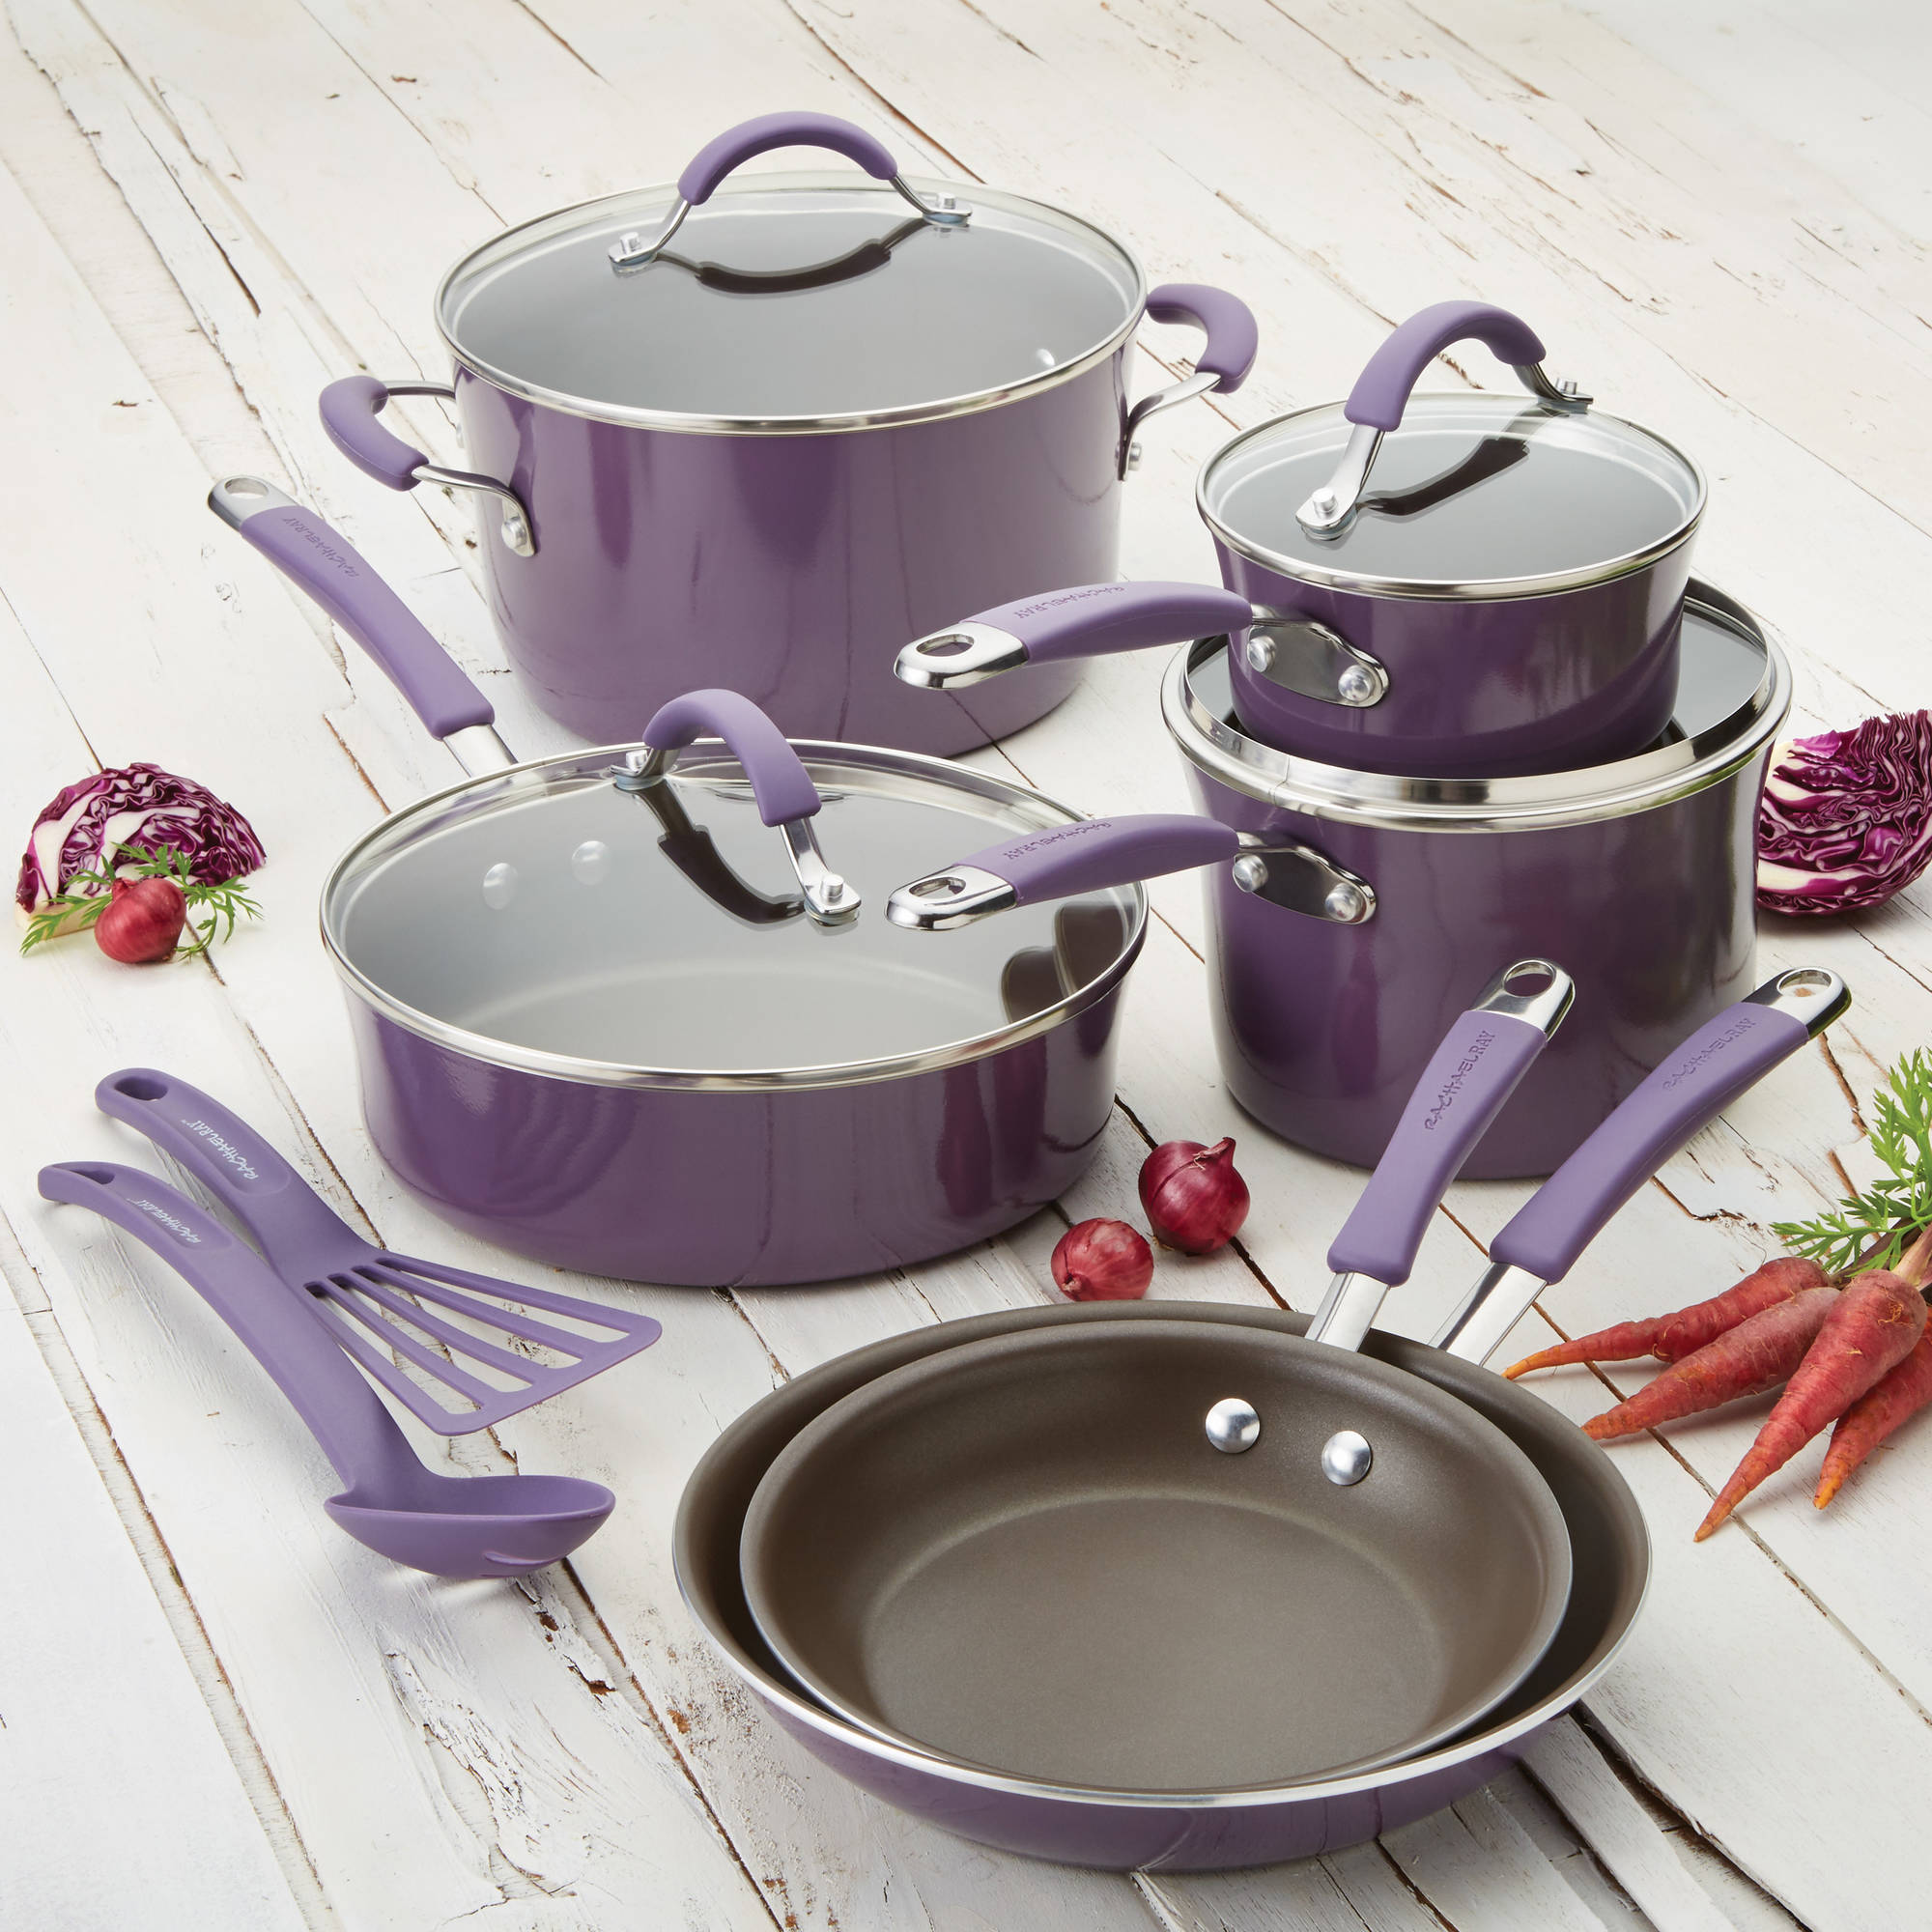 The Rachel Ray Cucina Hard Porcelain Enamel 12 Piece